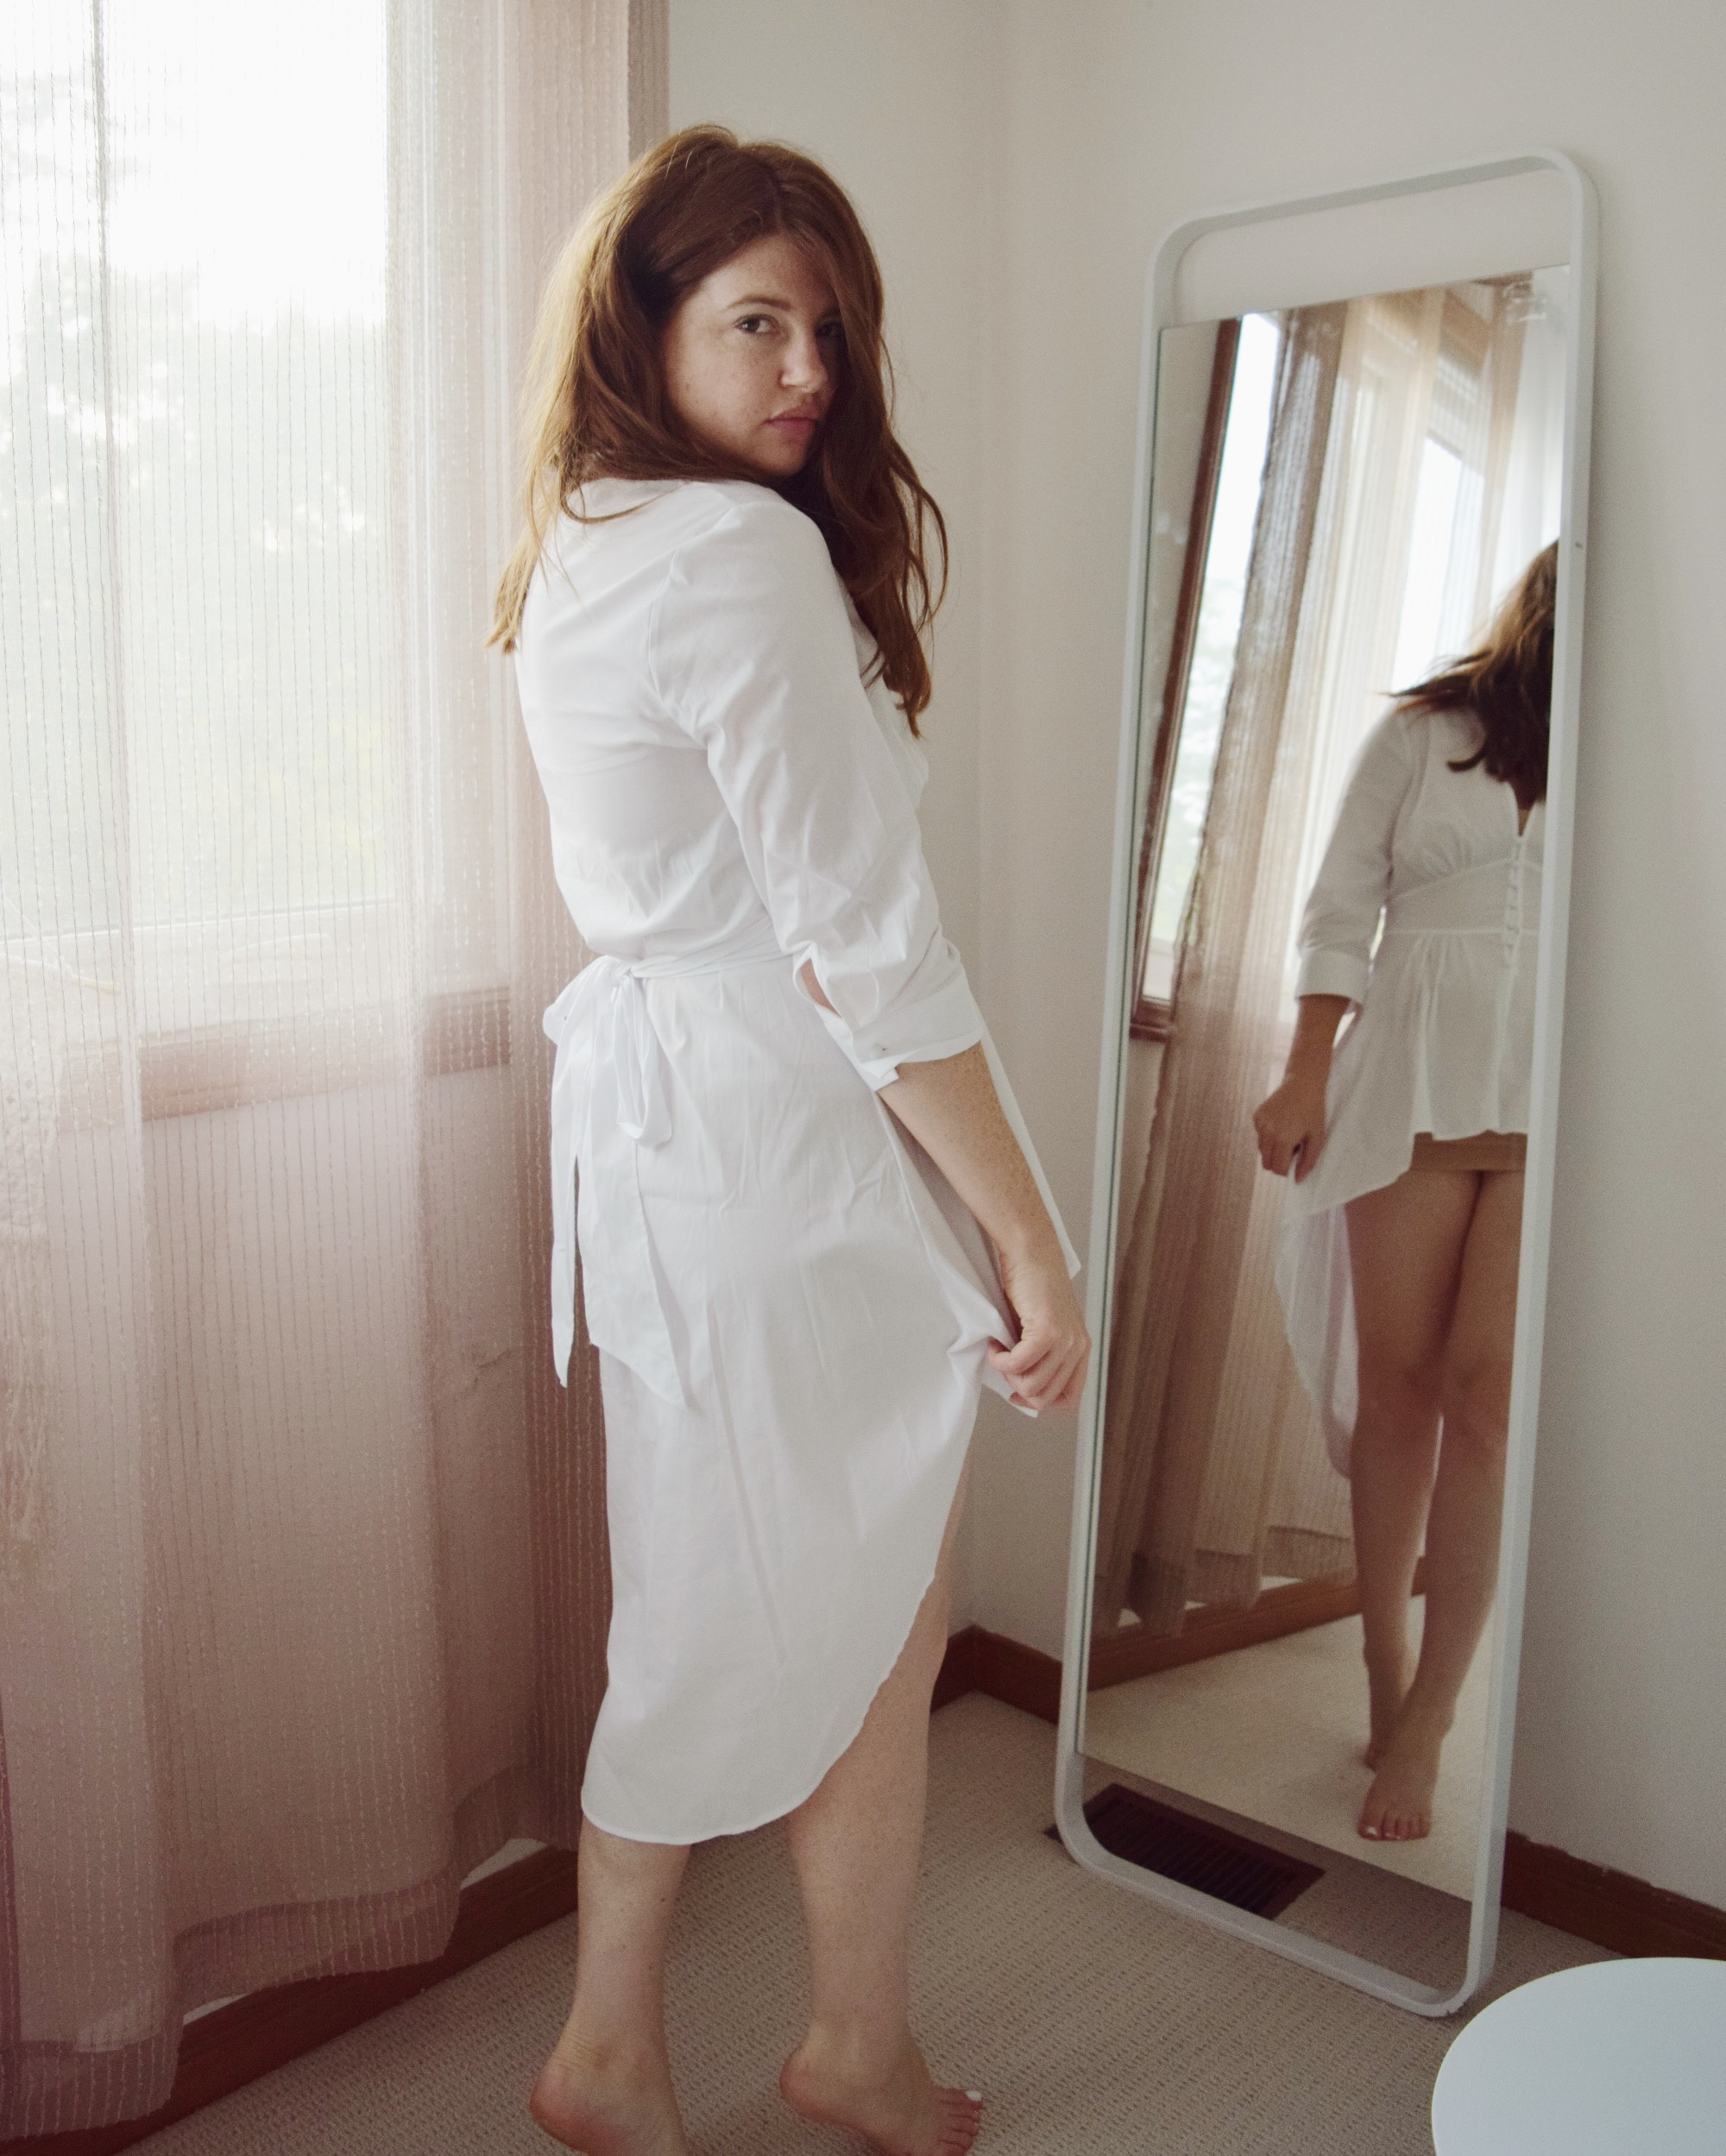 Wearing White Dress from New York and Company